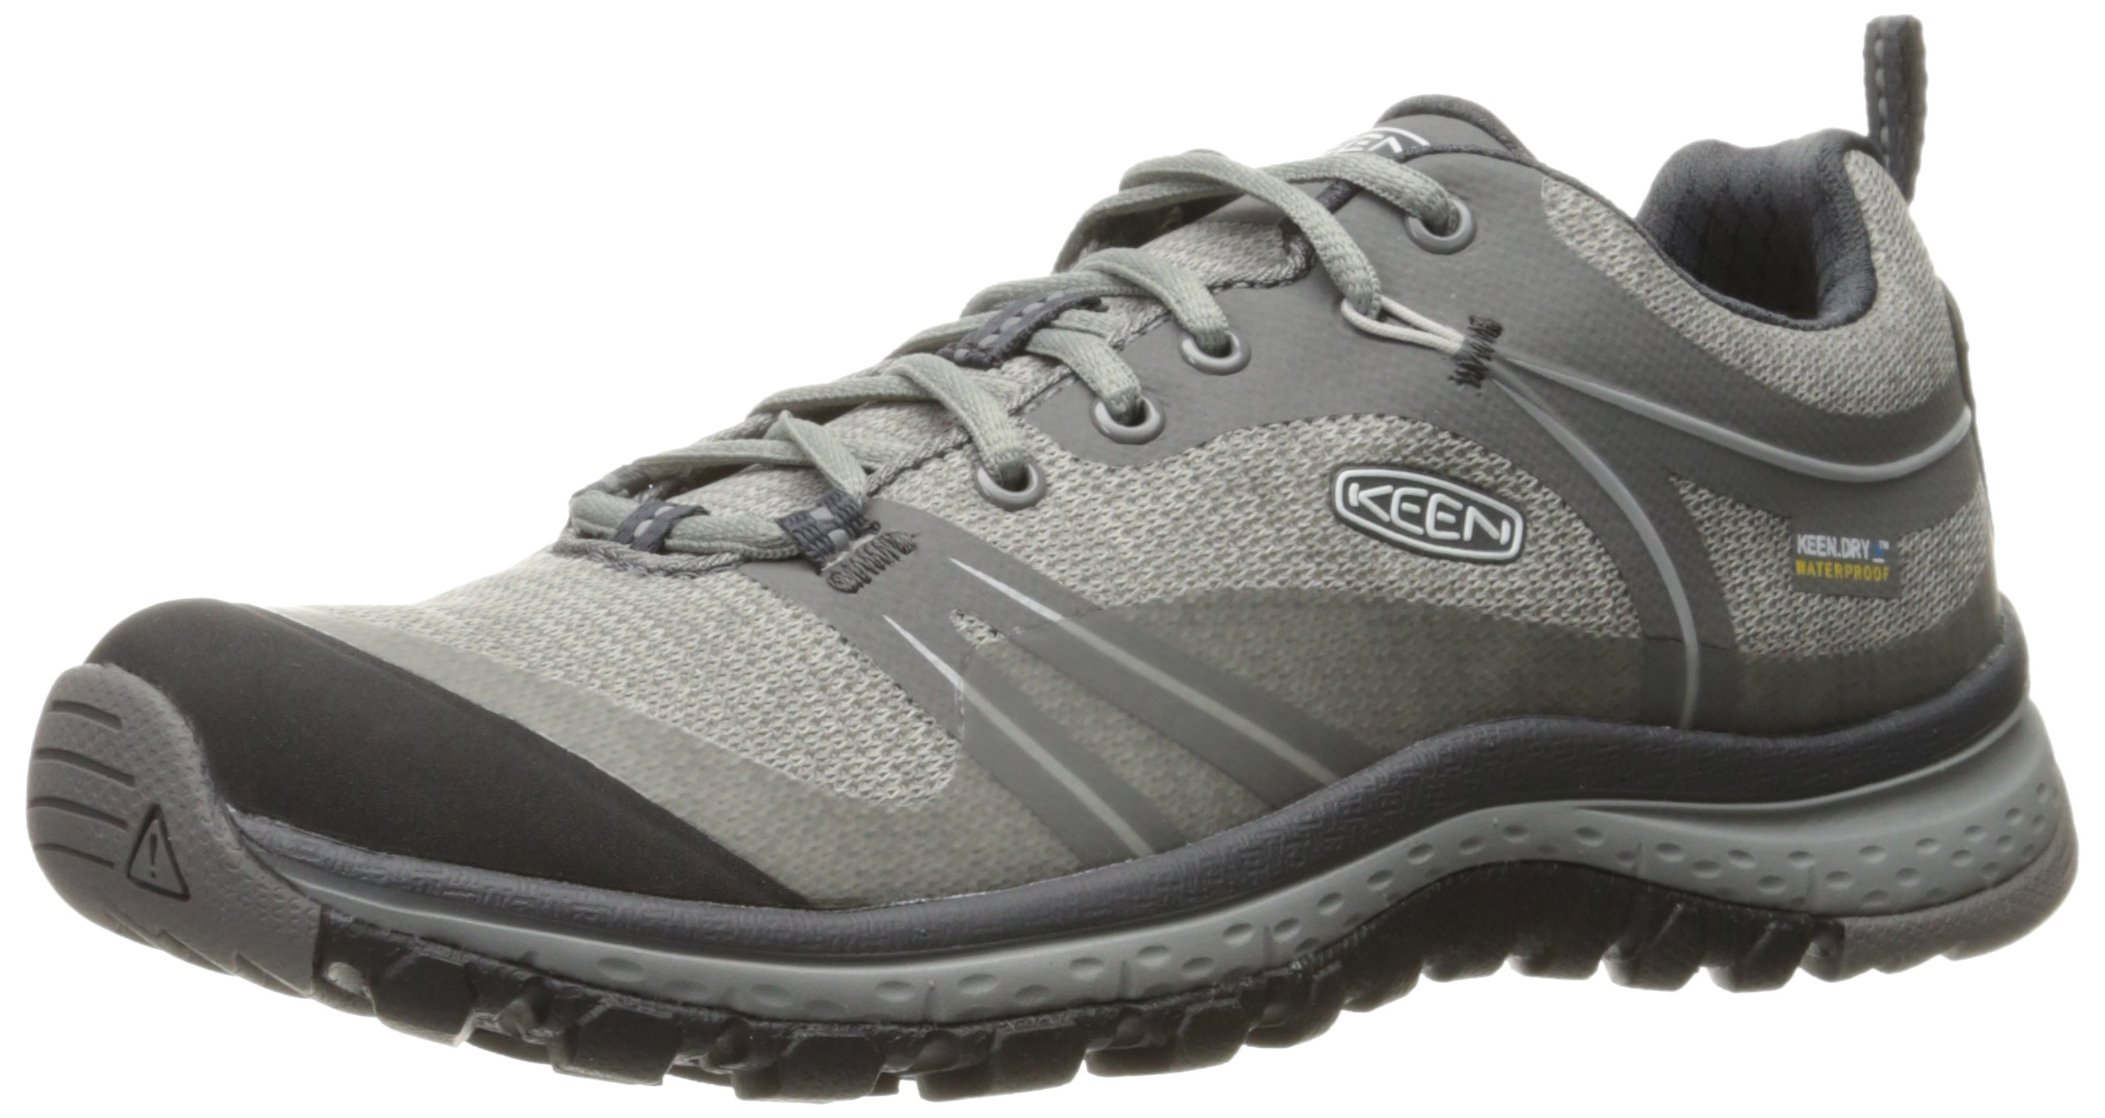 KEEN Women's Terradora Waterproof Hiking Shoe, Neutral Gray/Gargoyle, 7.5 M US